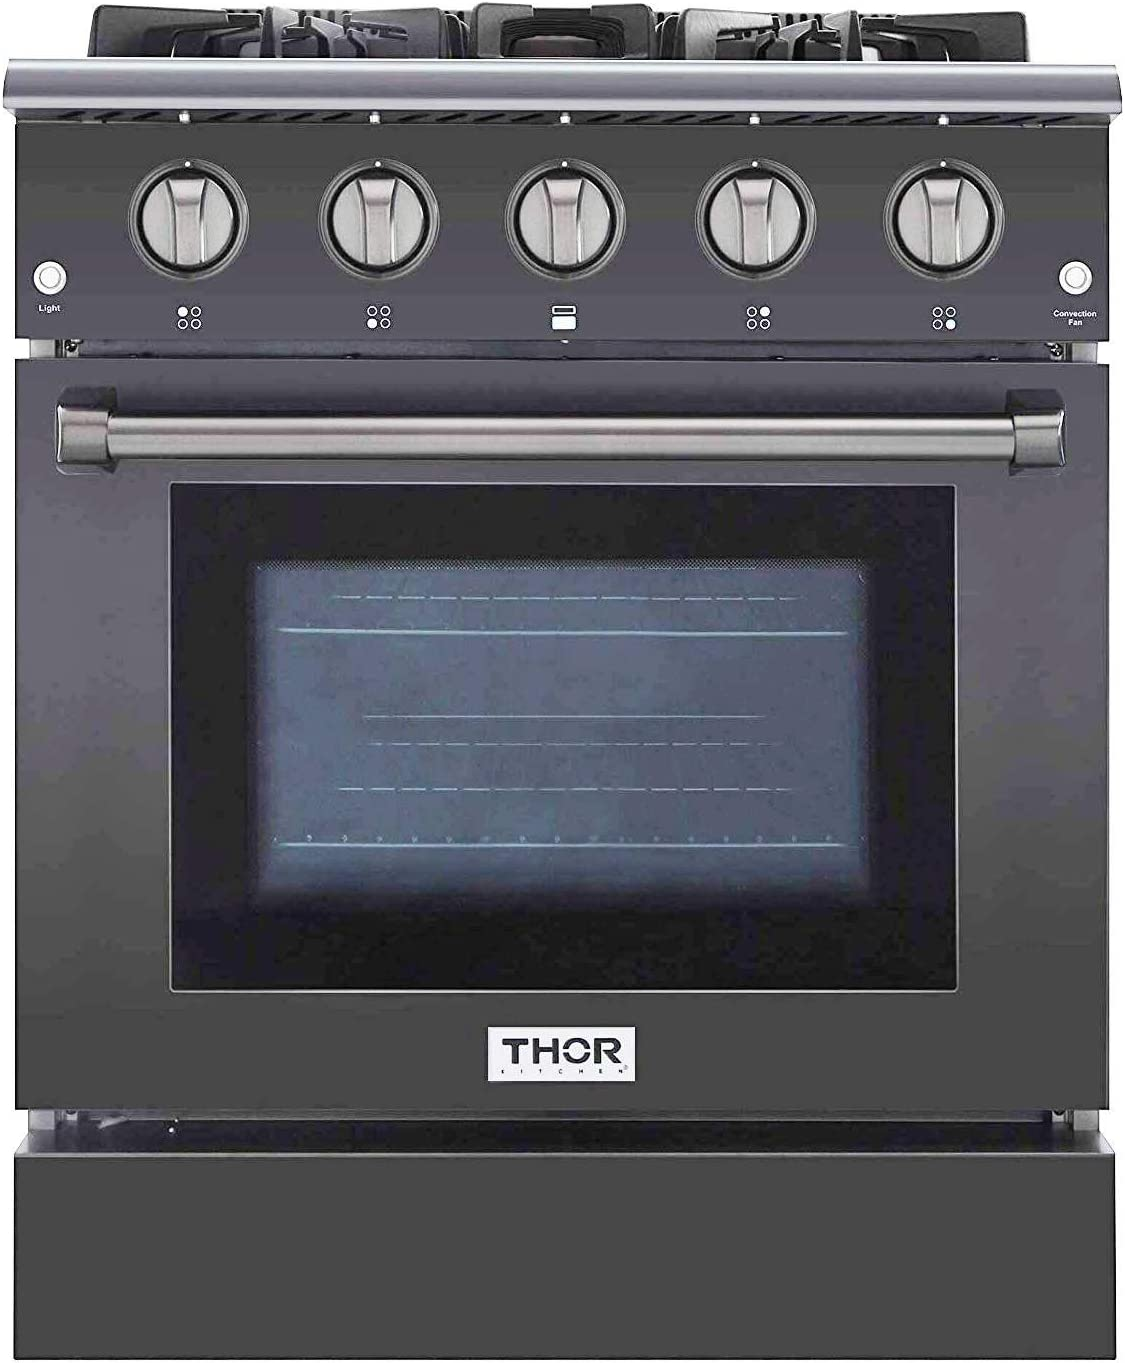 """Thor Kitchen HRG3080GMT 30"""" Freestanding Professional Style Gas Range with 4.2 cuft, 4 Burners, Convection Fan, Cast Iron Grates, and Blue Porcelain Oven Interior in Stainless Steel"""